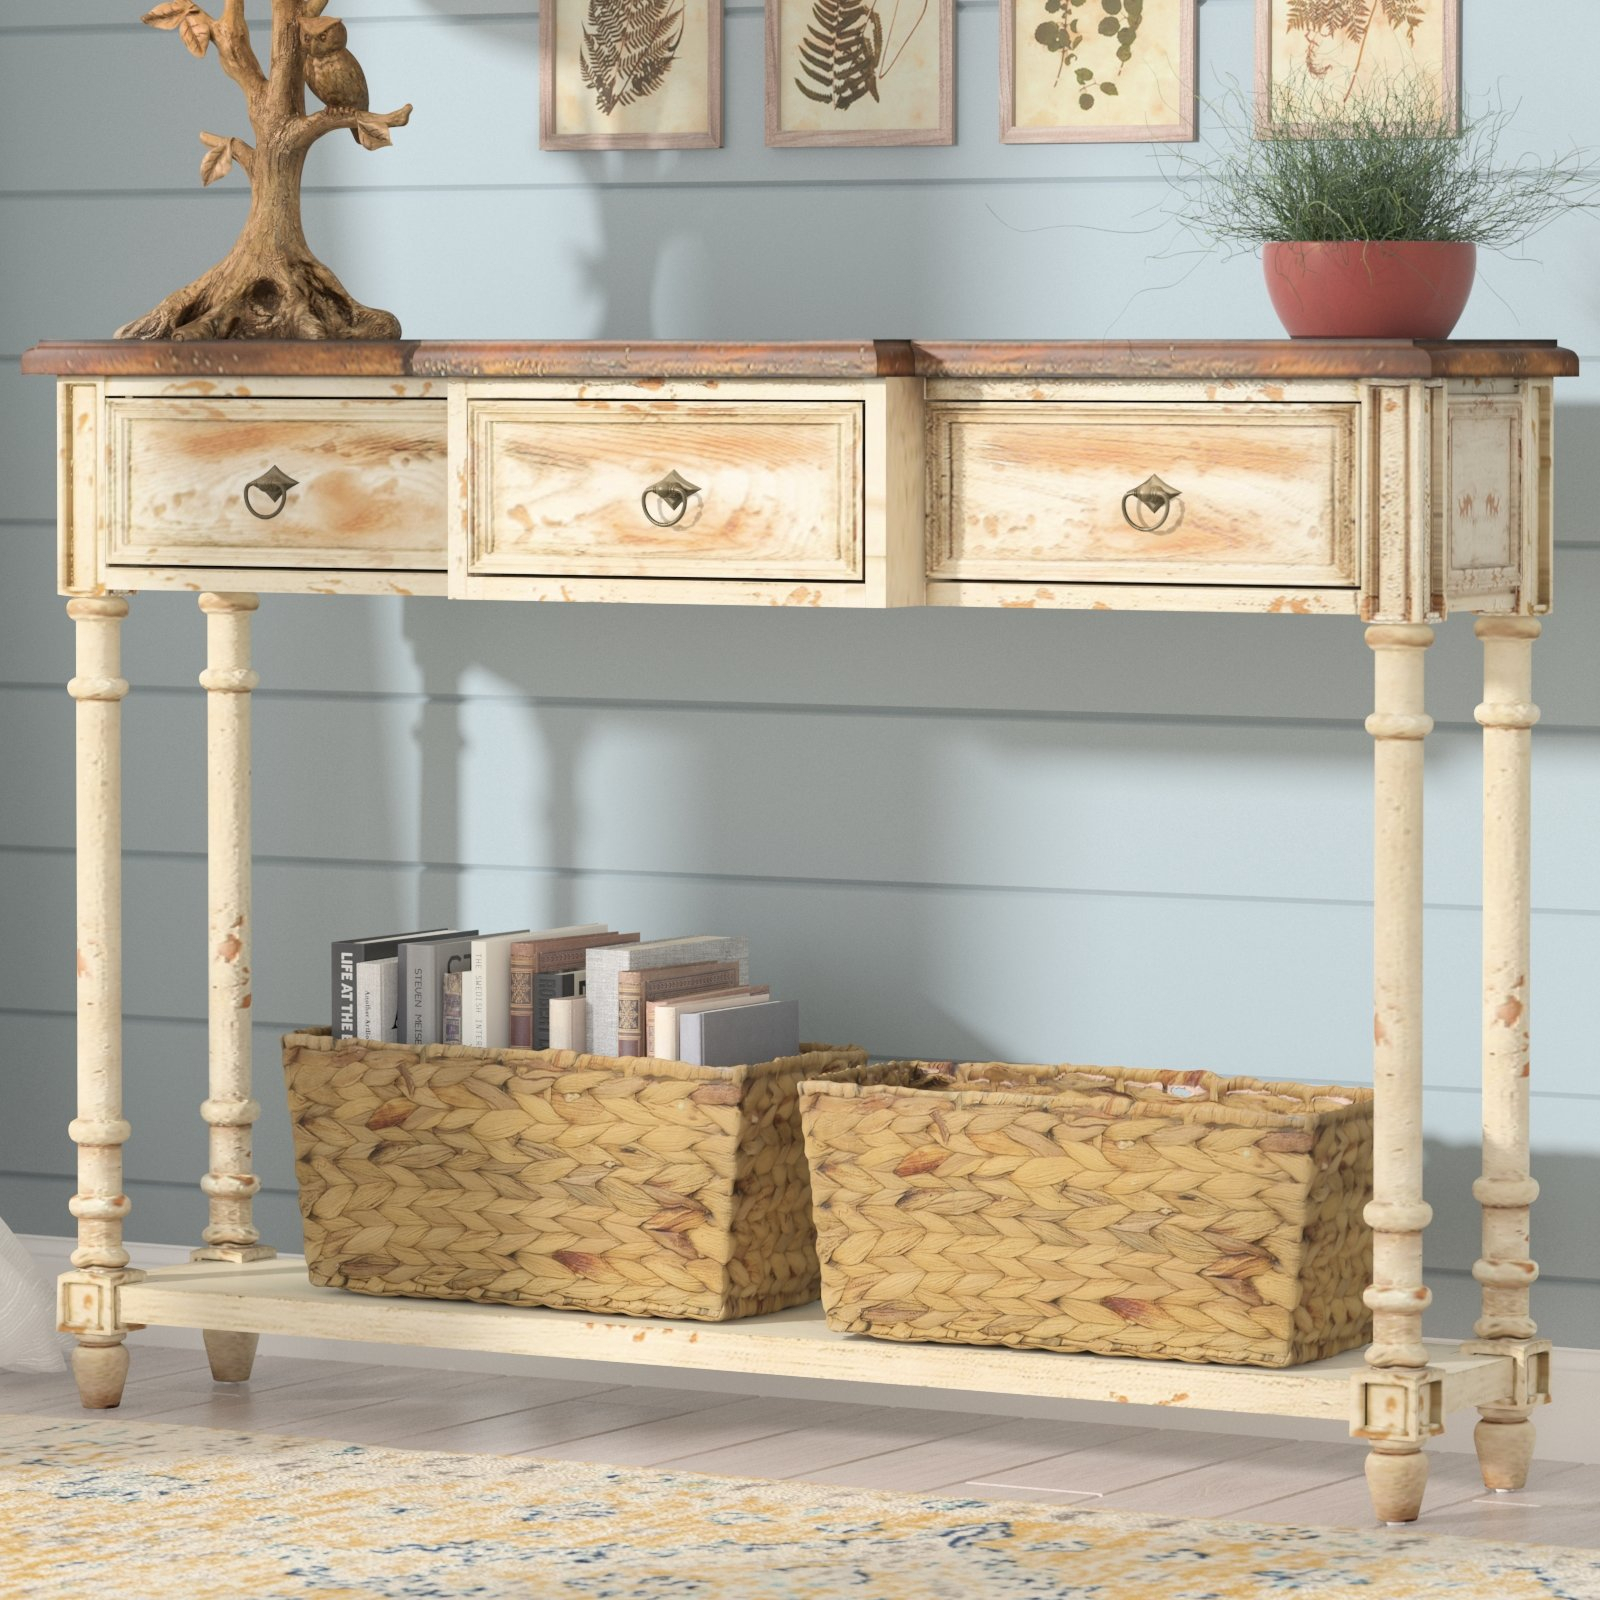 Distressed Finish Console Tables You'll Love | Wayfair In Antique White Distressed Console Tables (View 14 of 30)